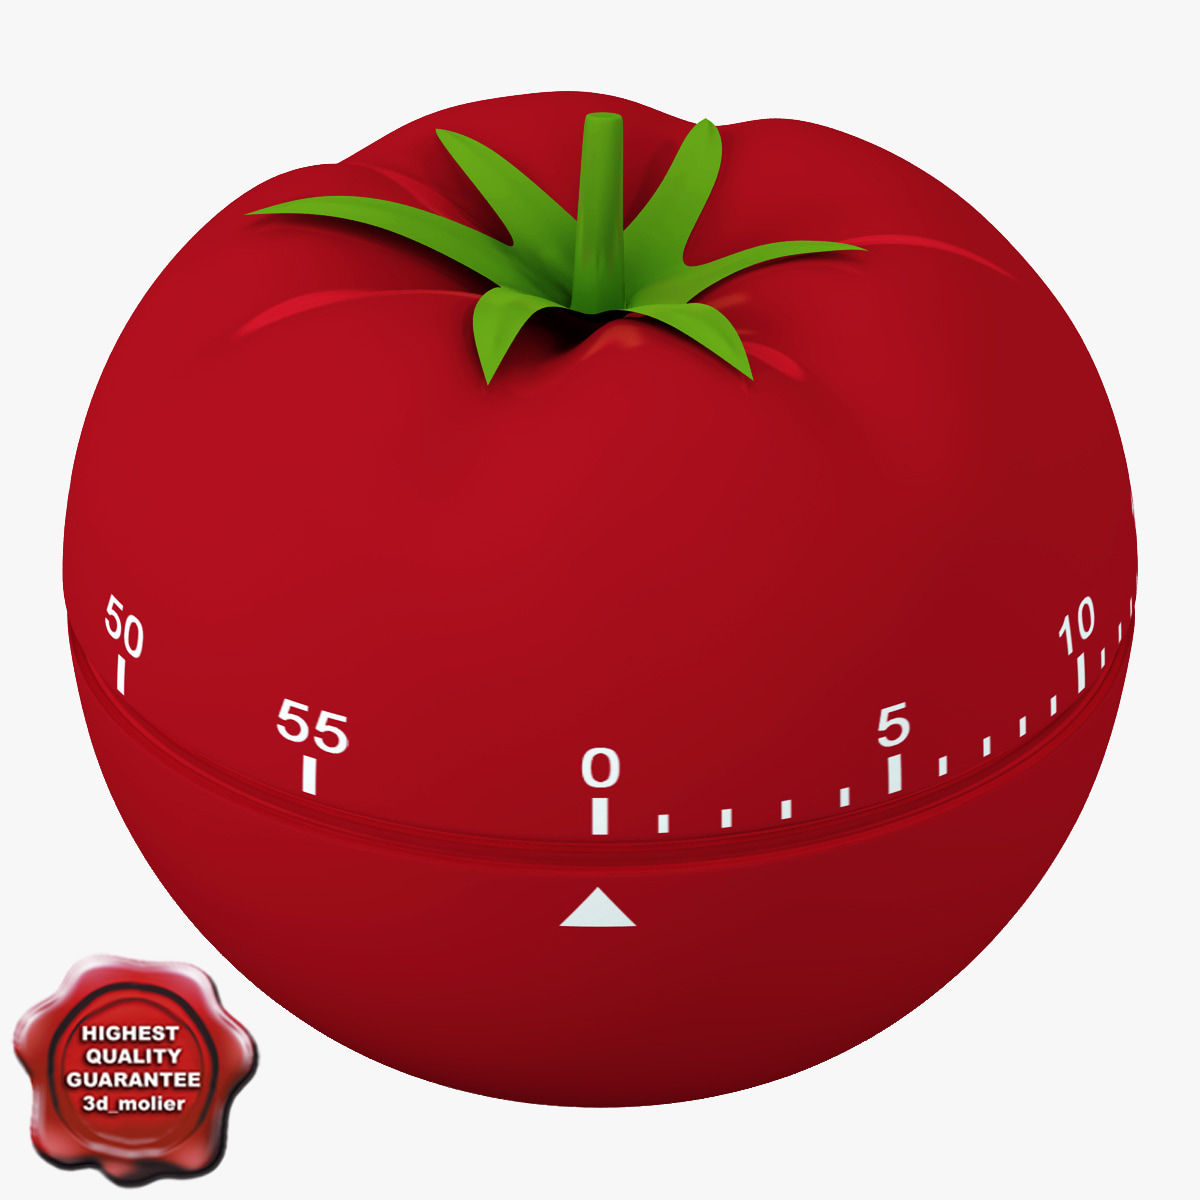 Kitchen_Timer_Tomato_00.jpg